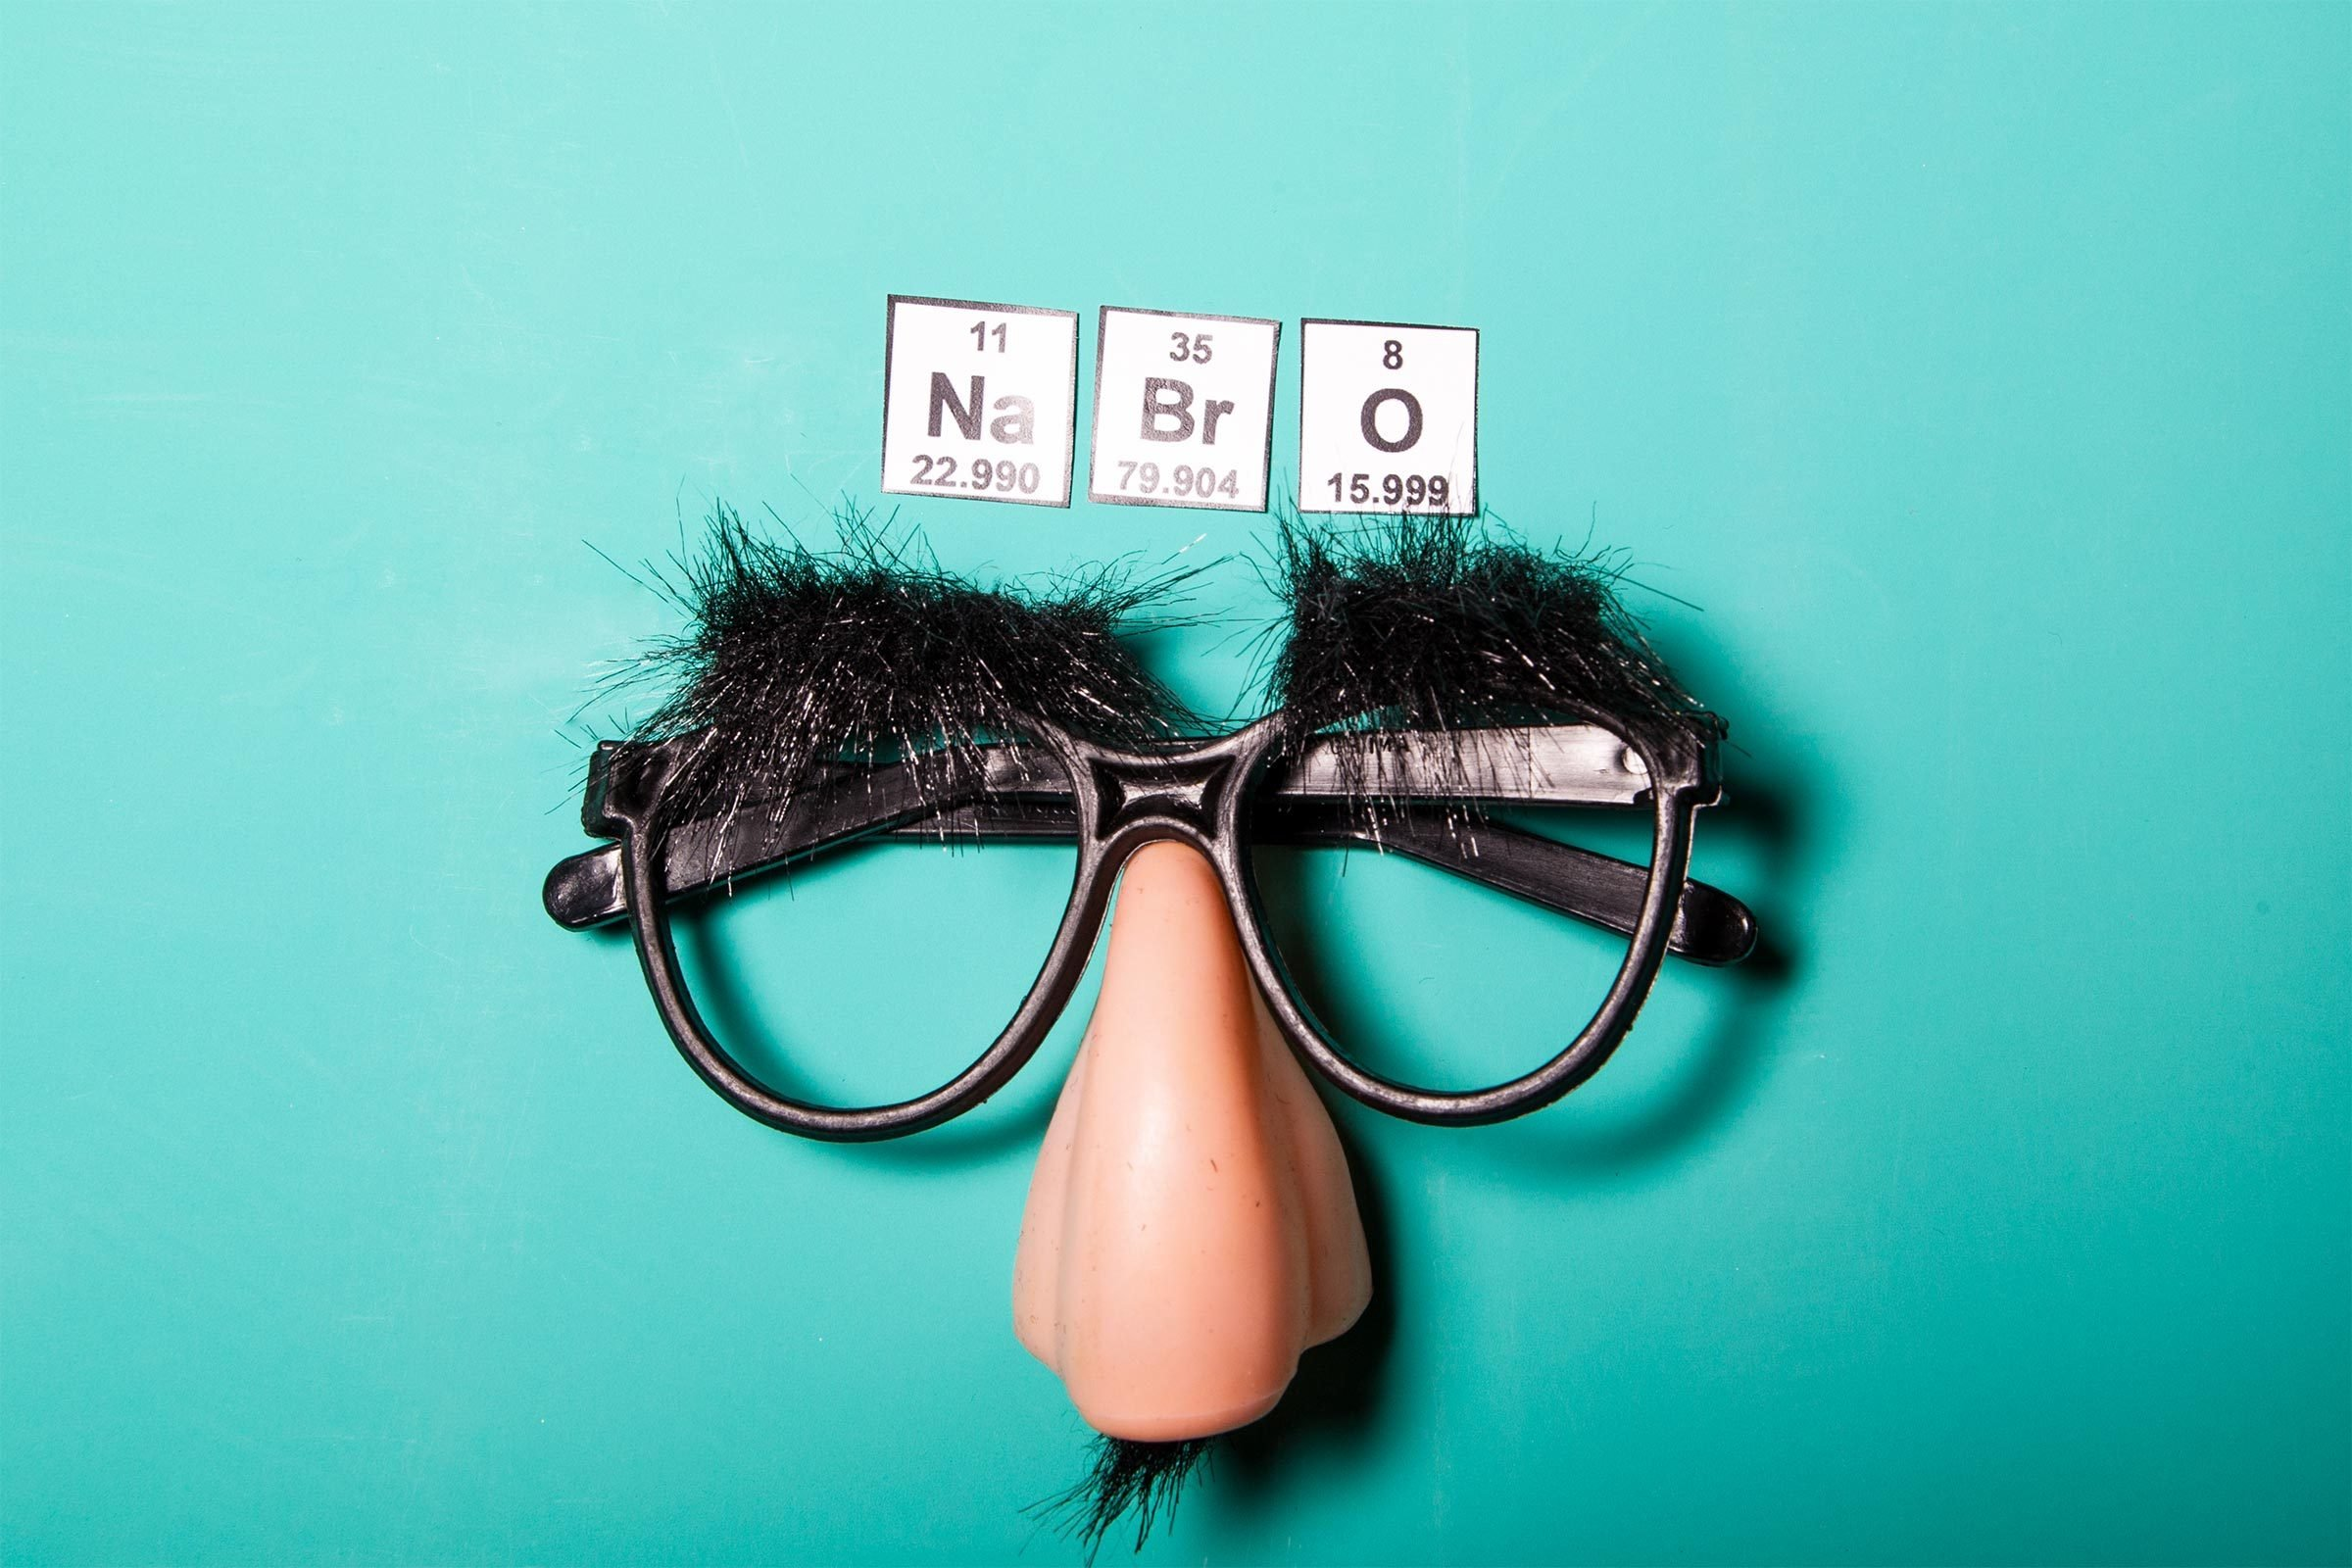 Hilarious Chemistry Jokes That Will Crack You Up | Reader's Digest